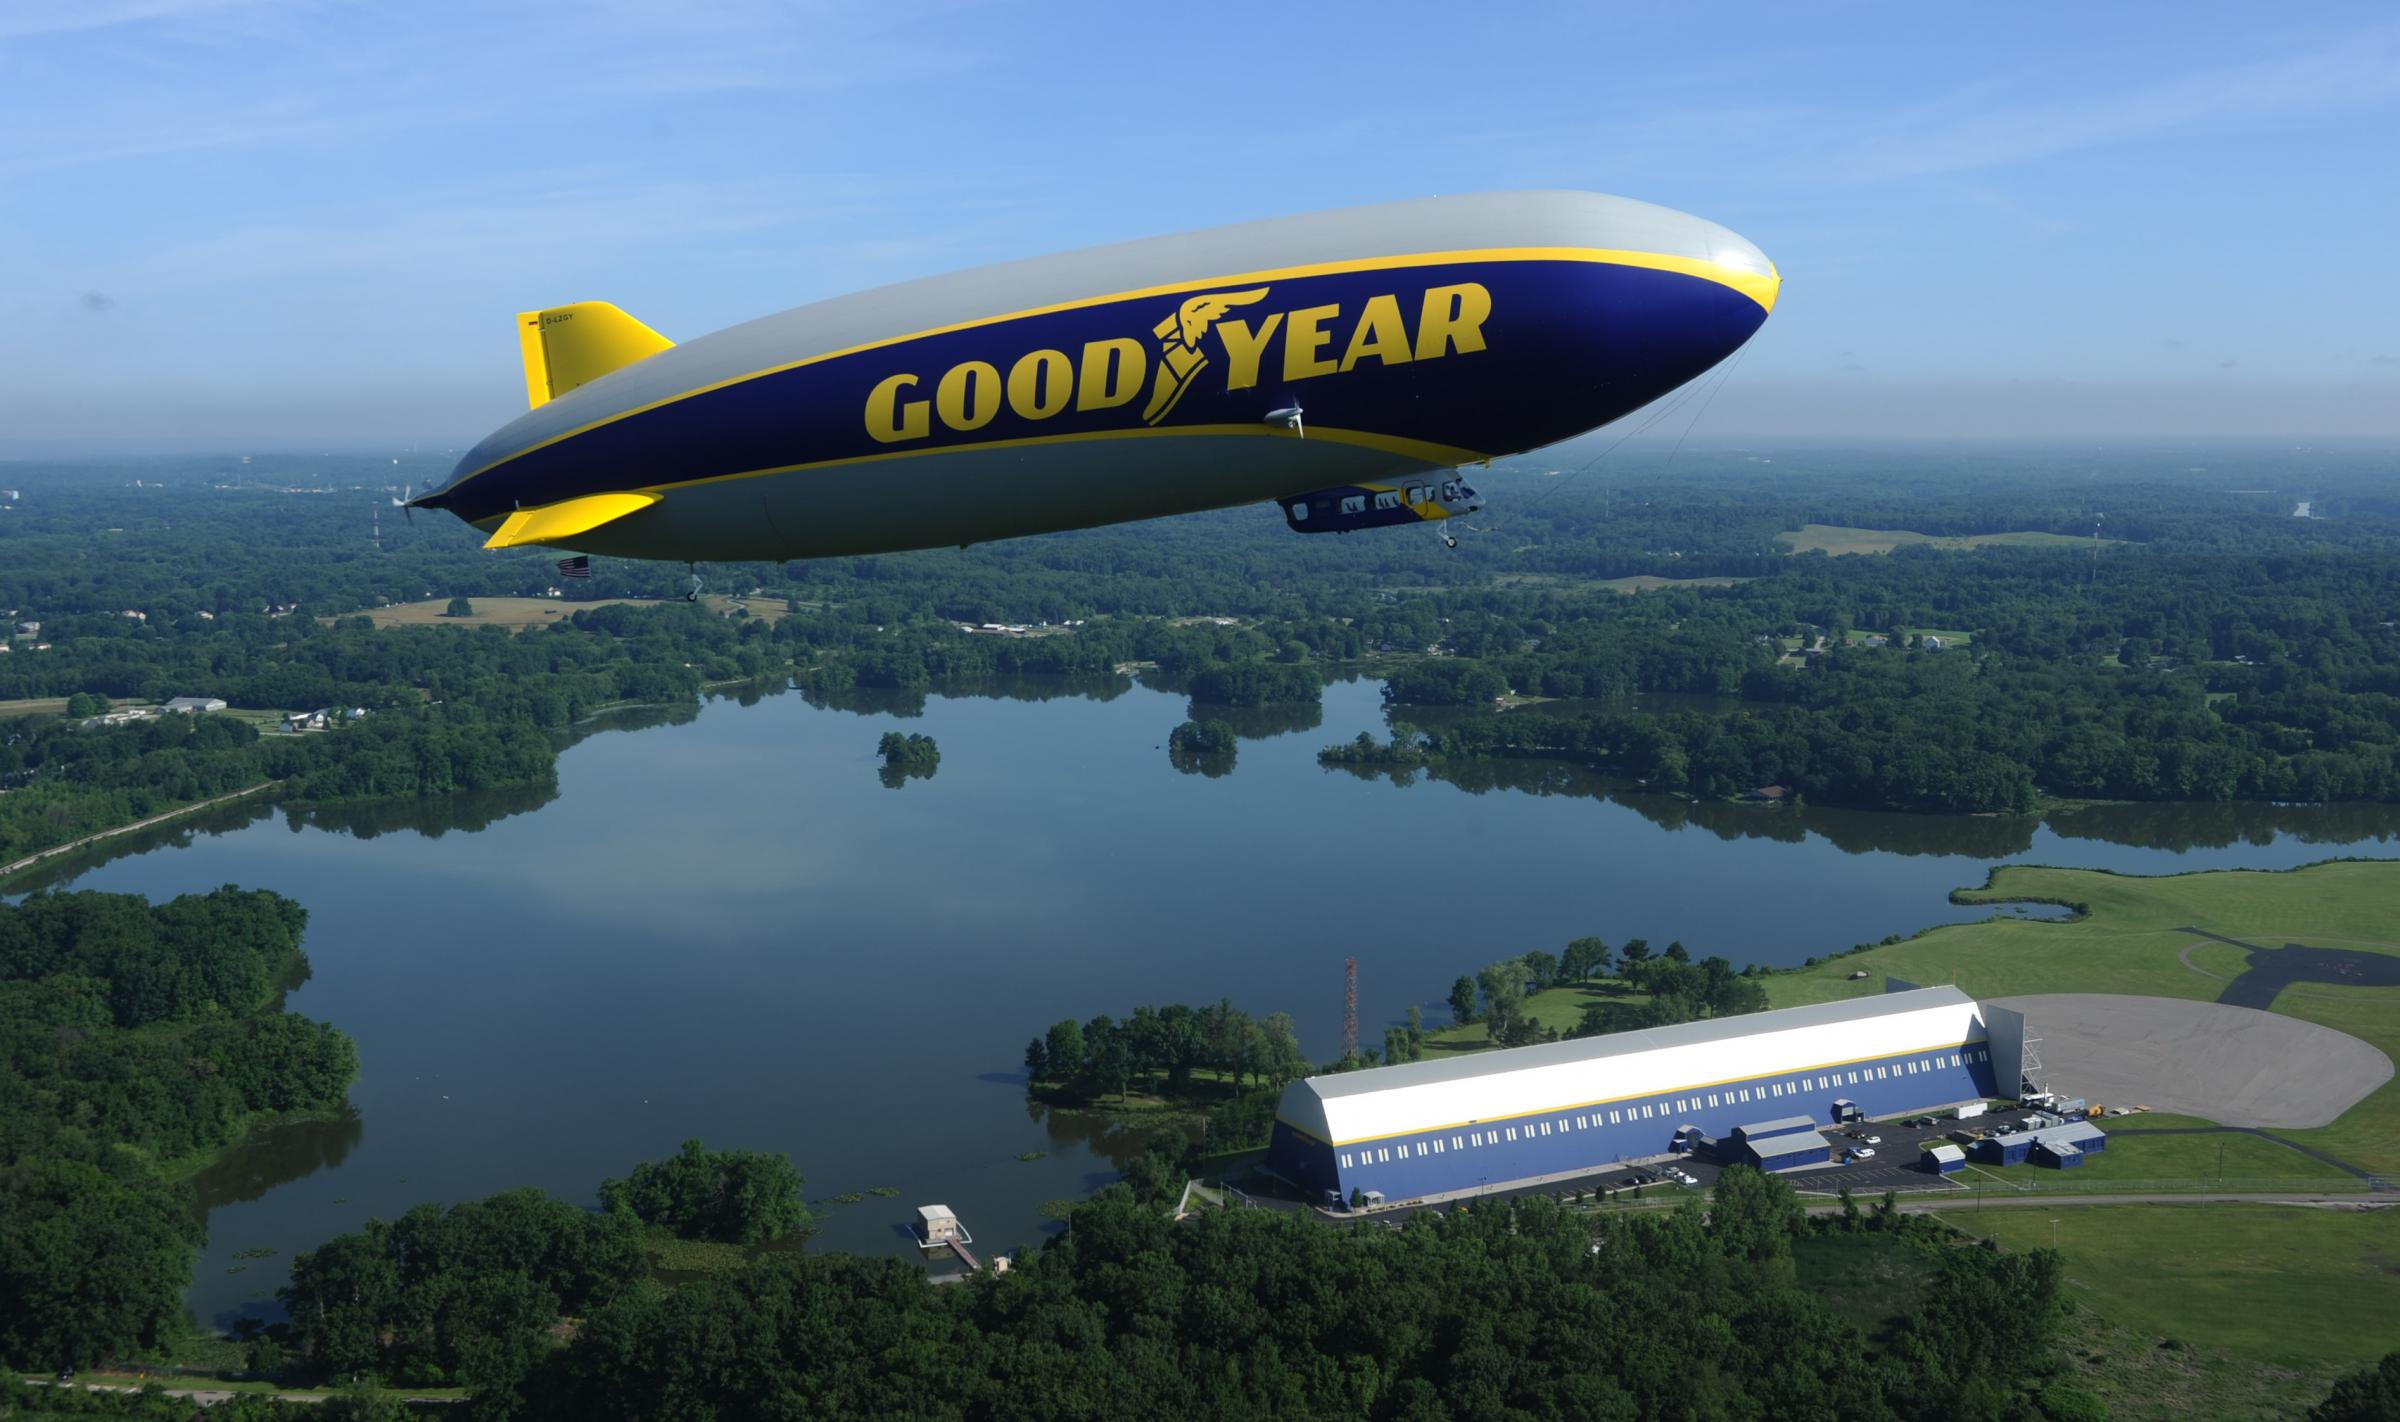 Goodyear S New Blimp Wingfoot Two Arrives In Los Angeles